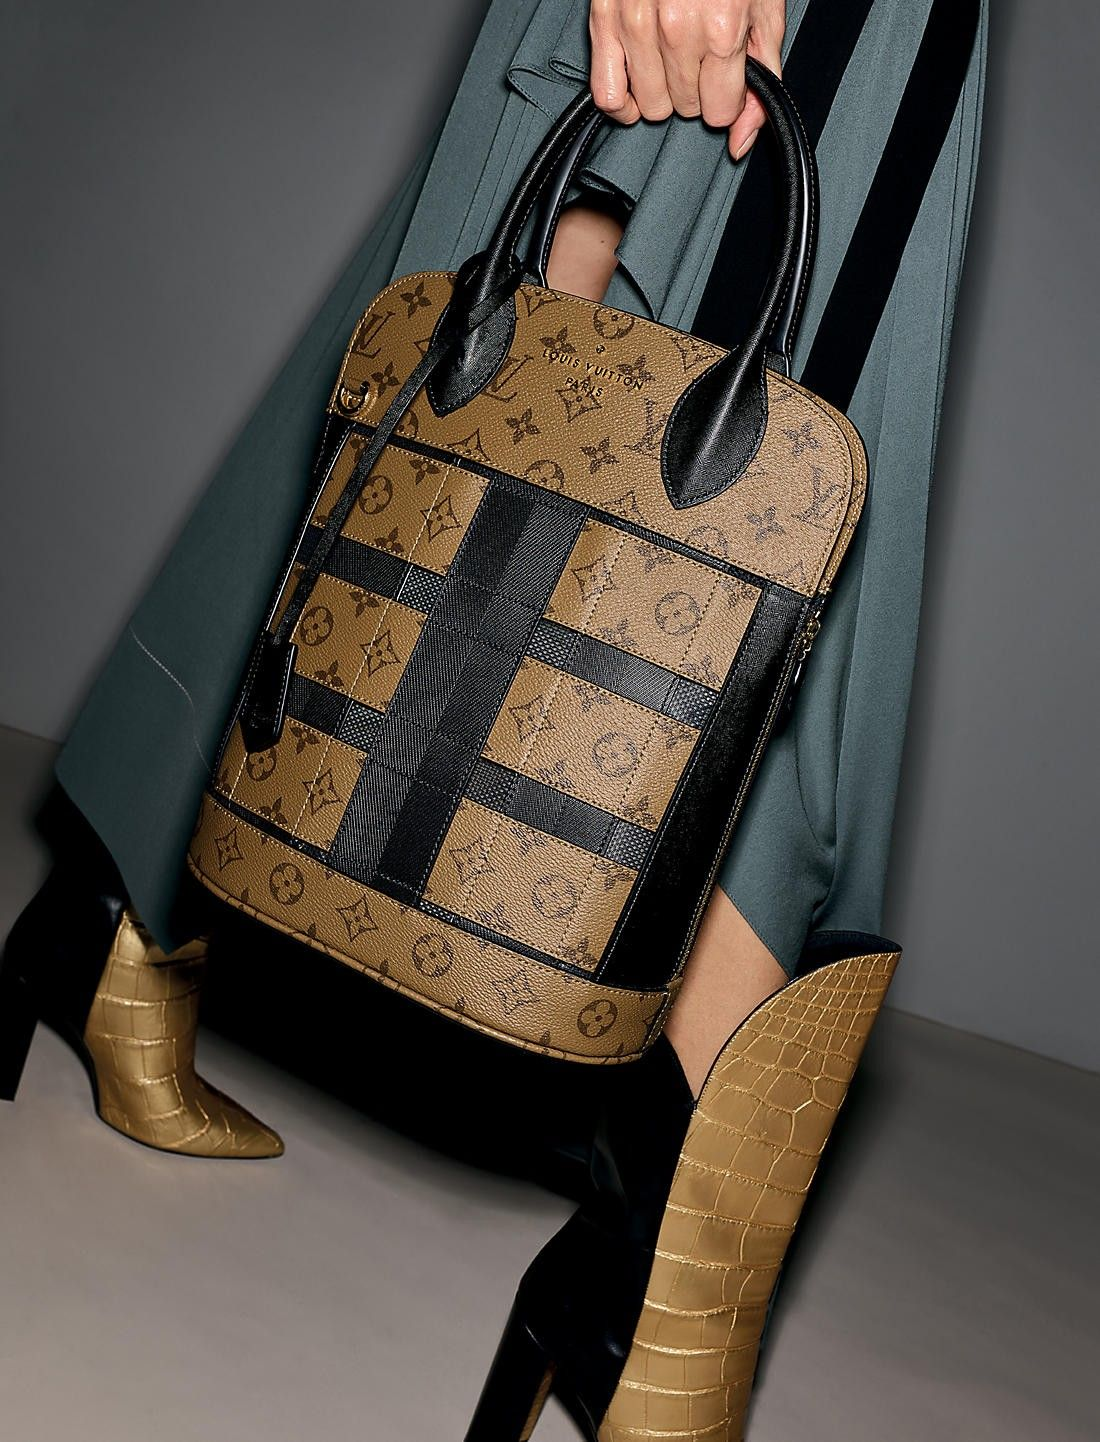 09f522dad61 Louis Vuitton Tressage Tote bag in Monogram Reverse   Bags ...